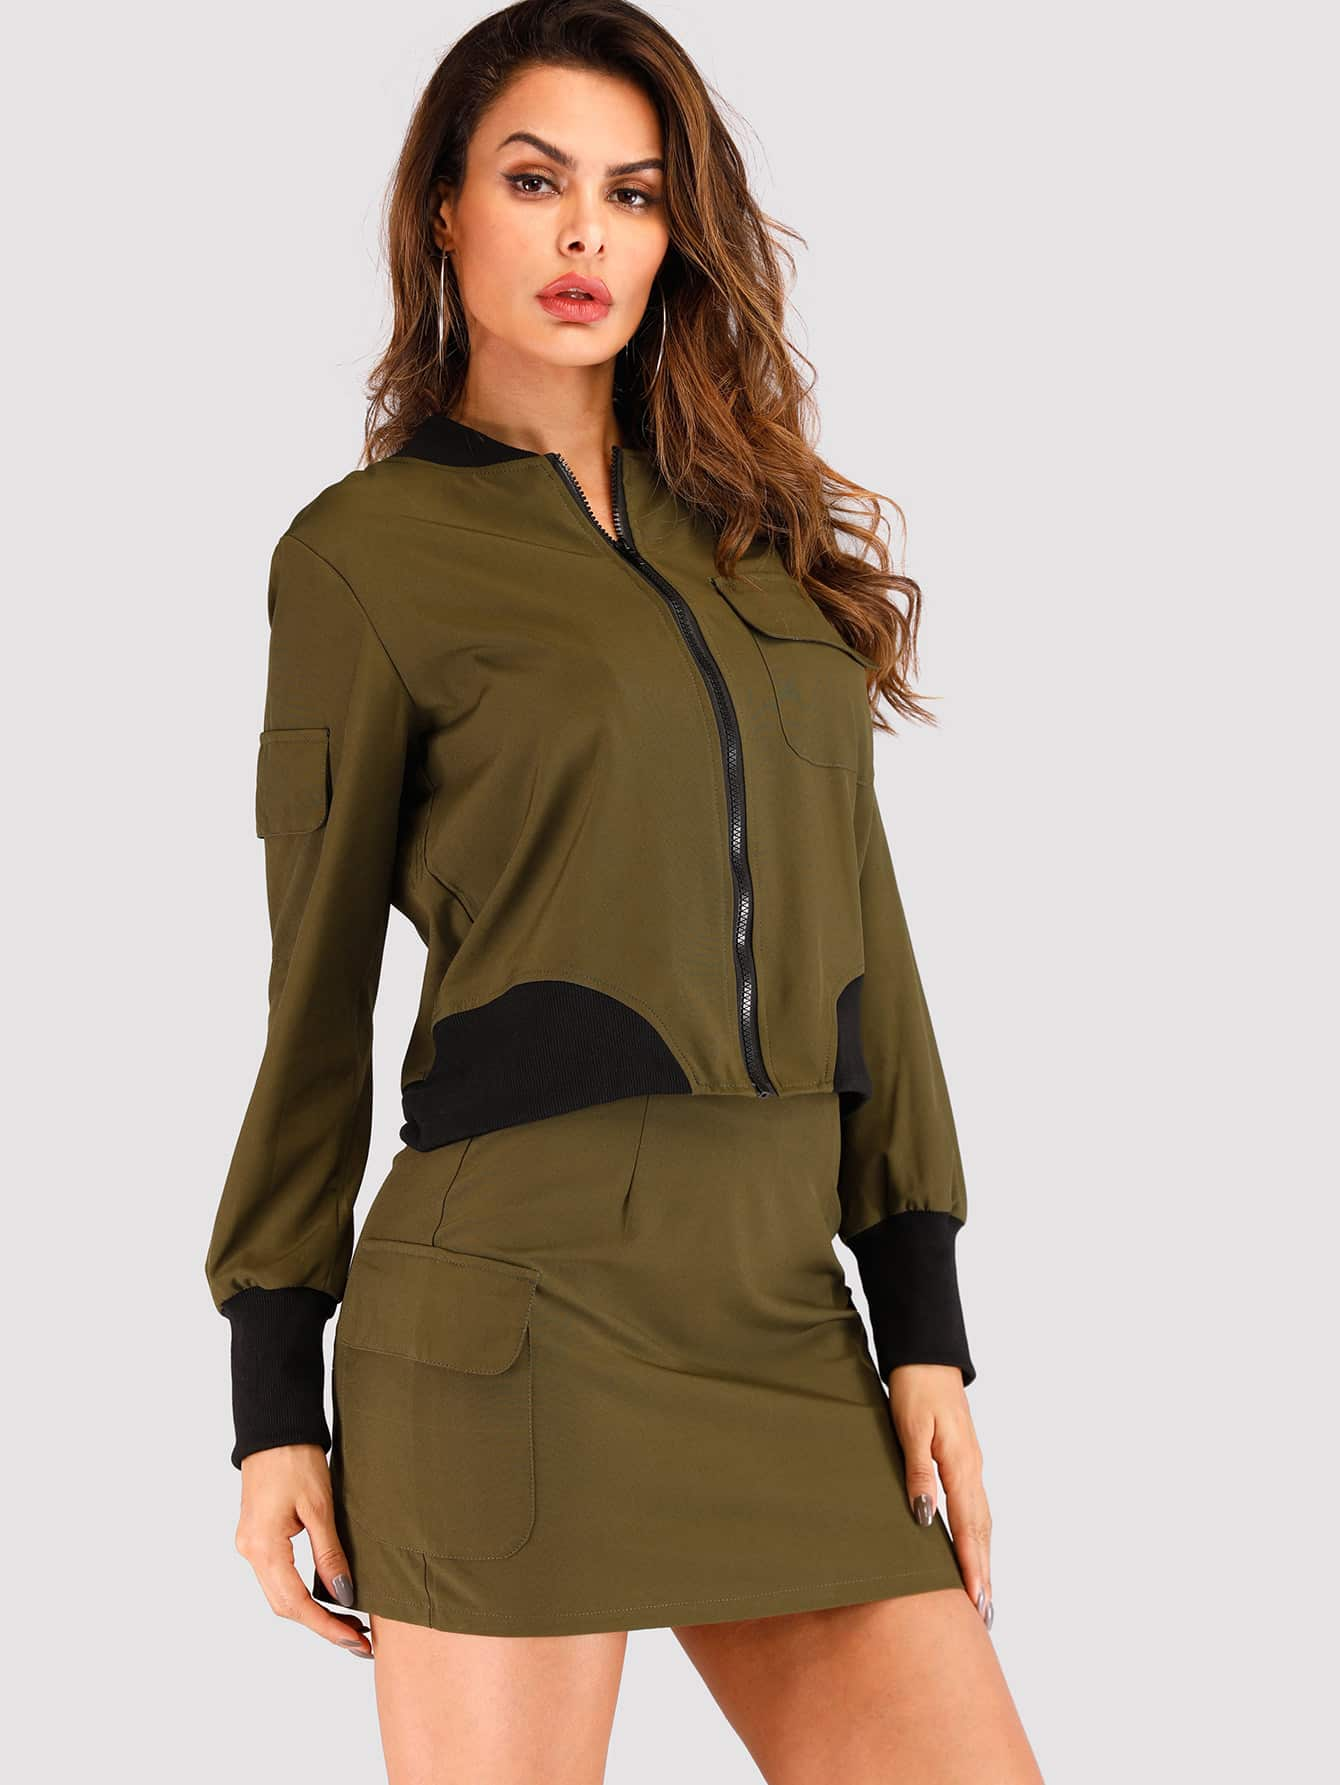 02b2508ce5b Zip Up Cut And Sew Jacket With Skirt EmmaCloth-Women Fast ...